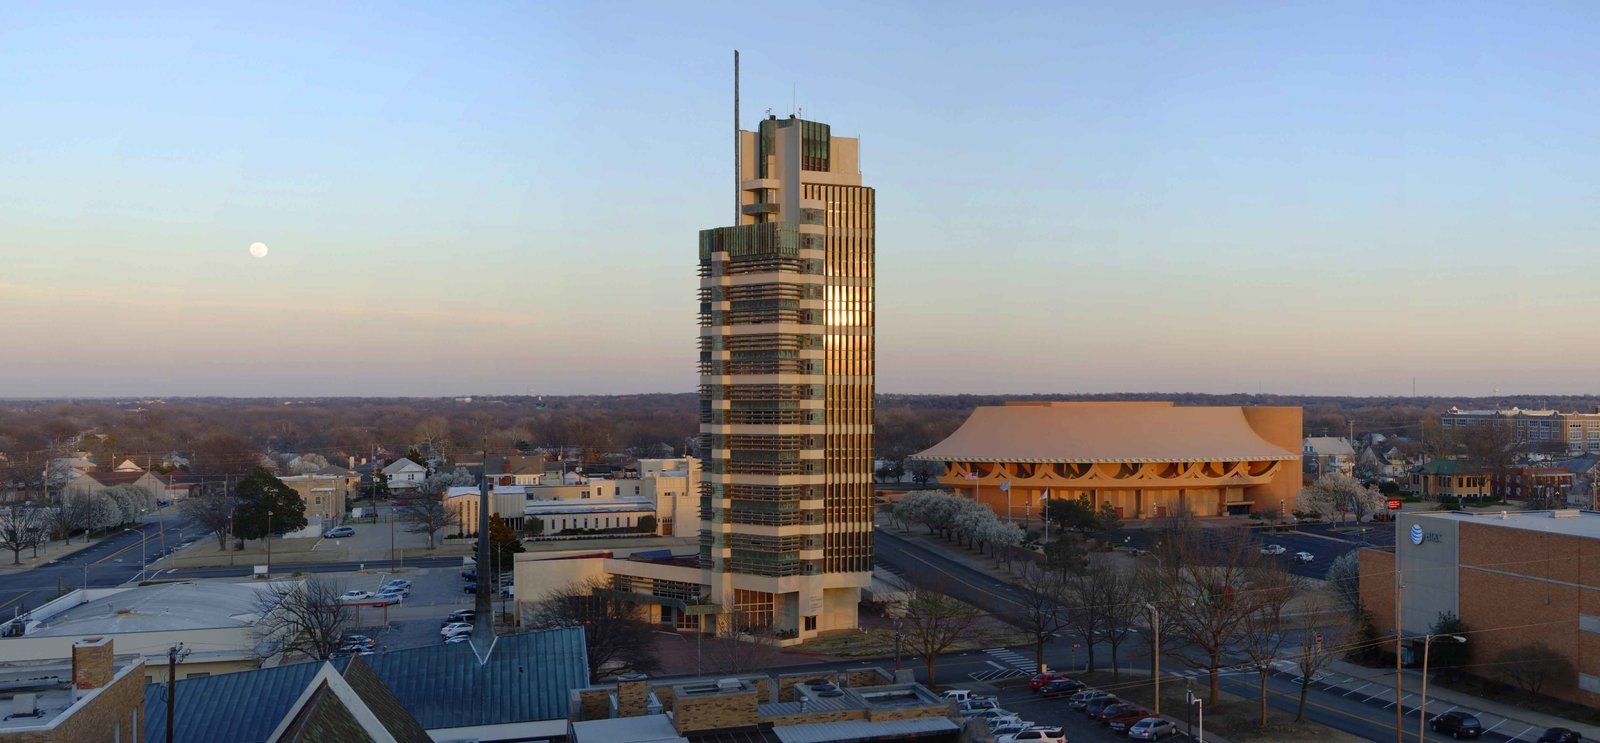 Price Tower (1952, Bartlesville, Oklahoma). This design is Wright's only realized skyscraper. Its distinctive facade features patinated copper cladding and sun louvers.  Iconic Frank Lloyd Wright Buildings by Allie Weiss